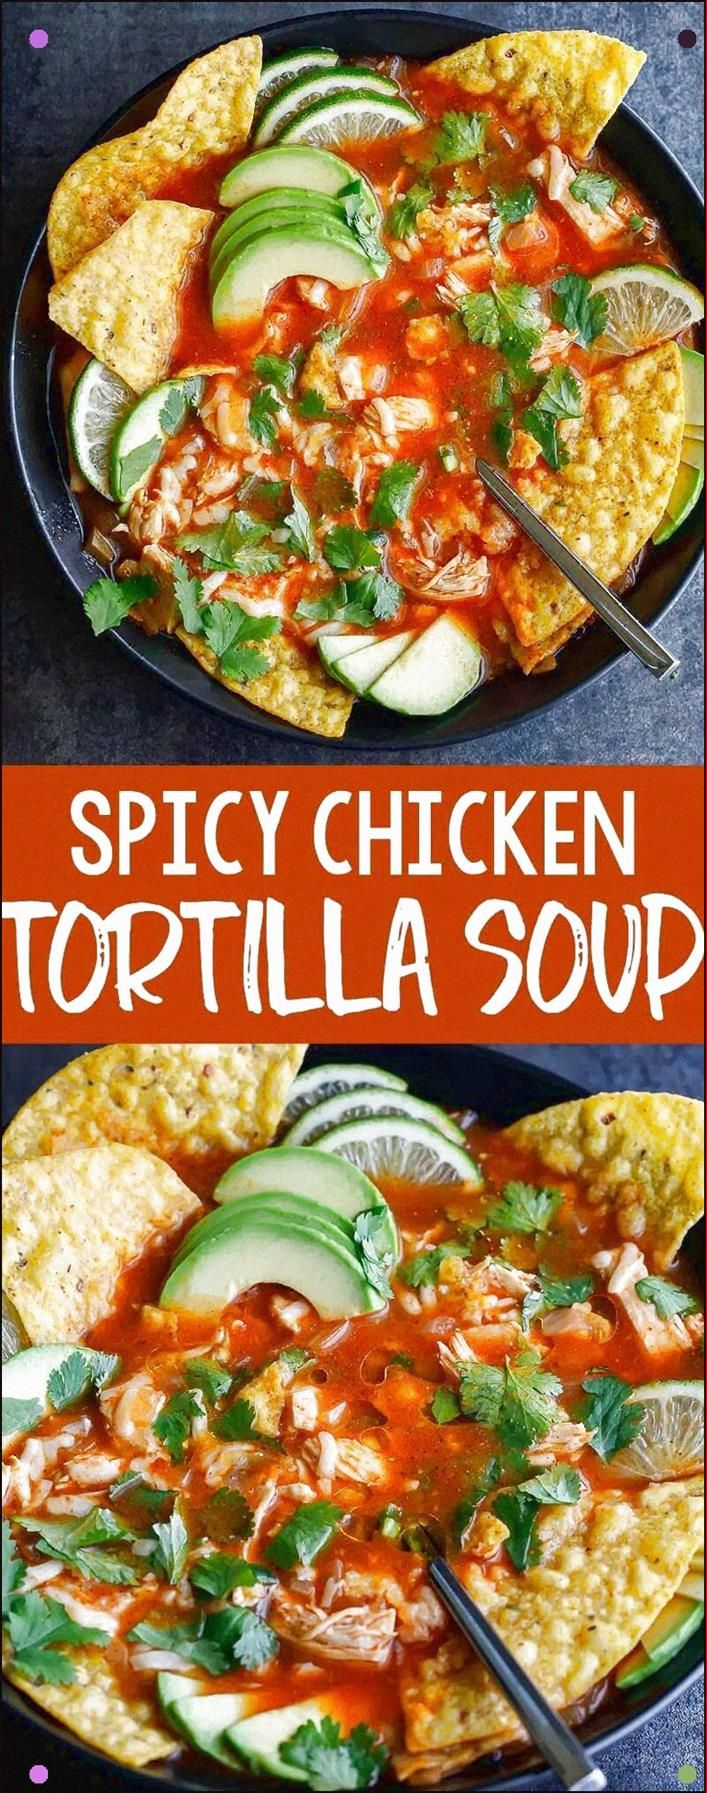 Spicy Chicken Tortilla Soup Is Fantastically Flavorful And Oh So Easy To Makethis Tasty One-Pot Soup Is Great The First Day And Even Better The Next